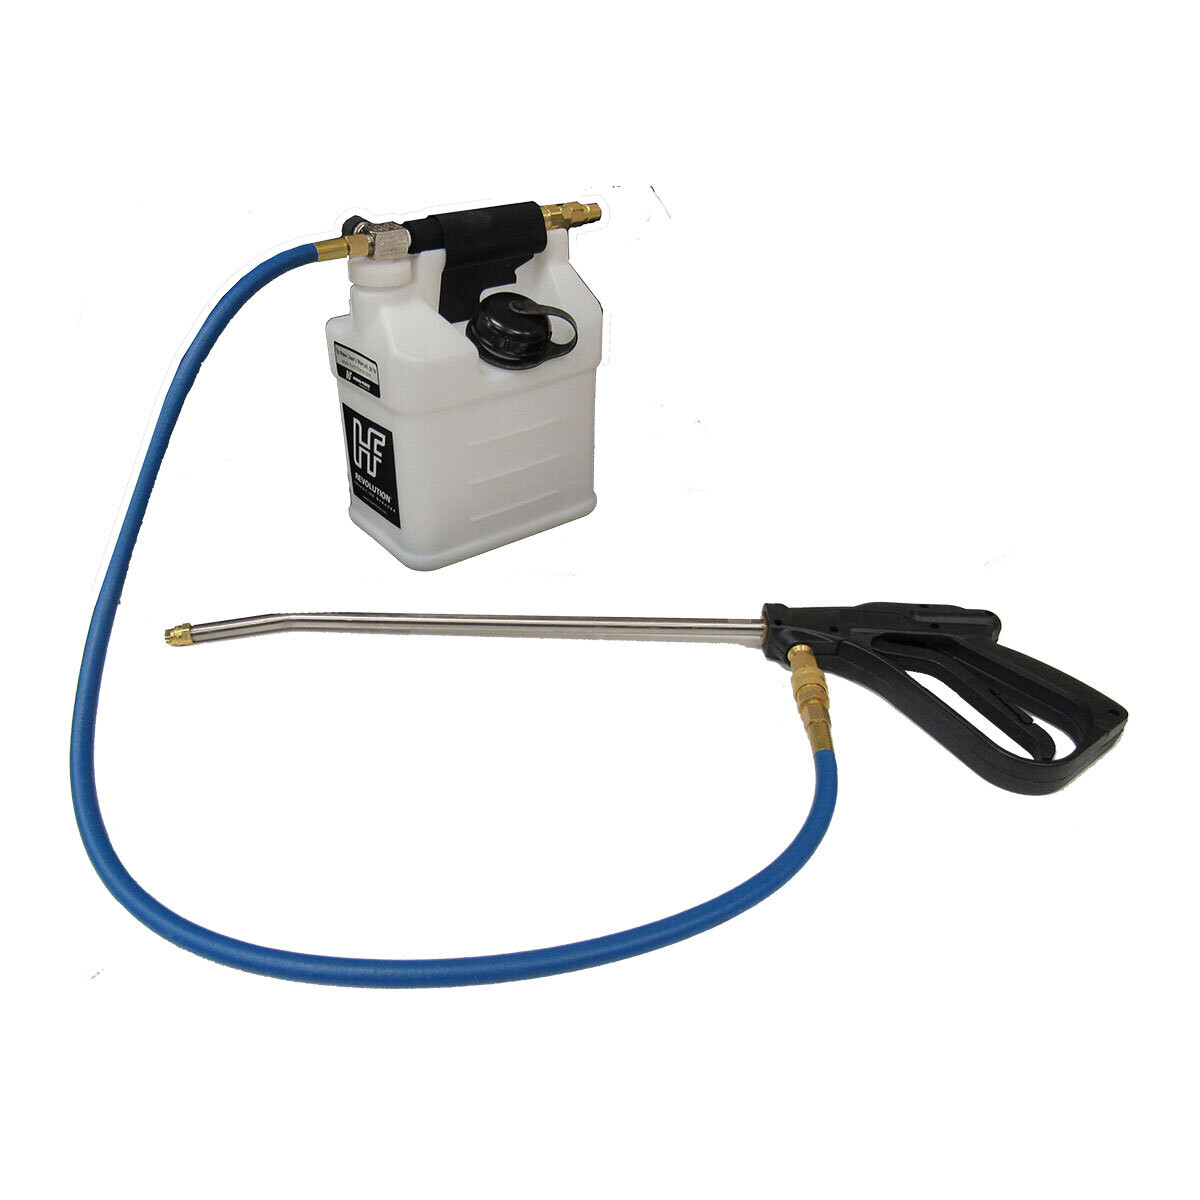 Hydro-Force Injection Sprayer